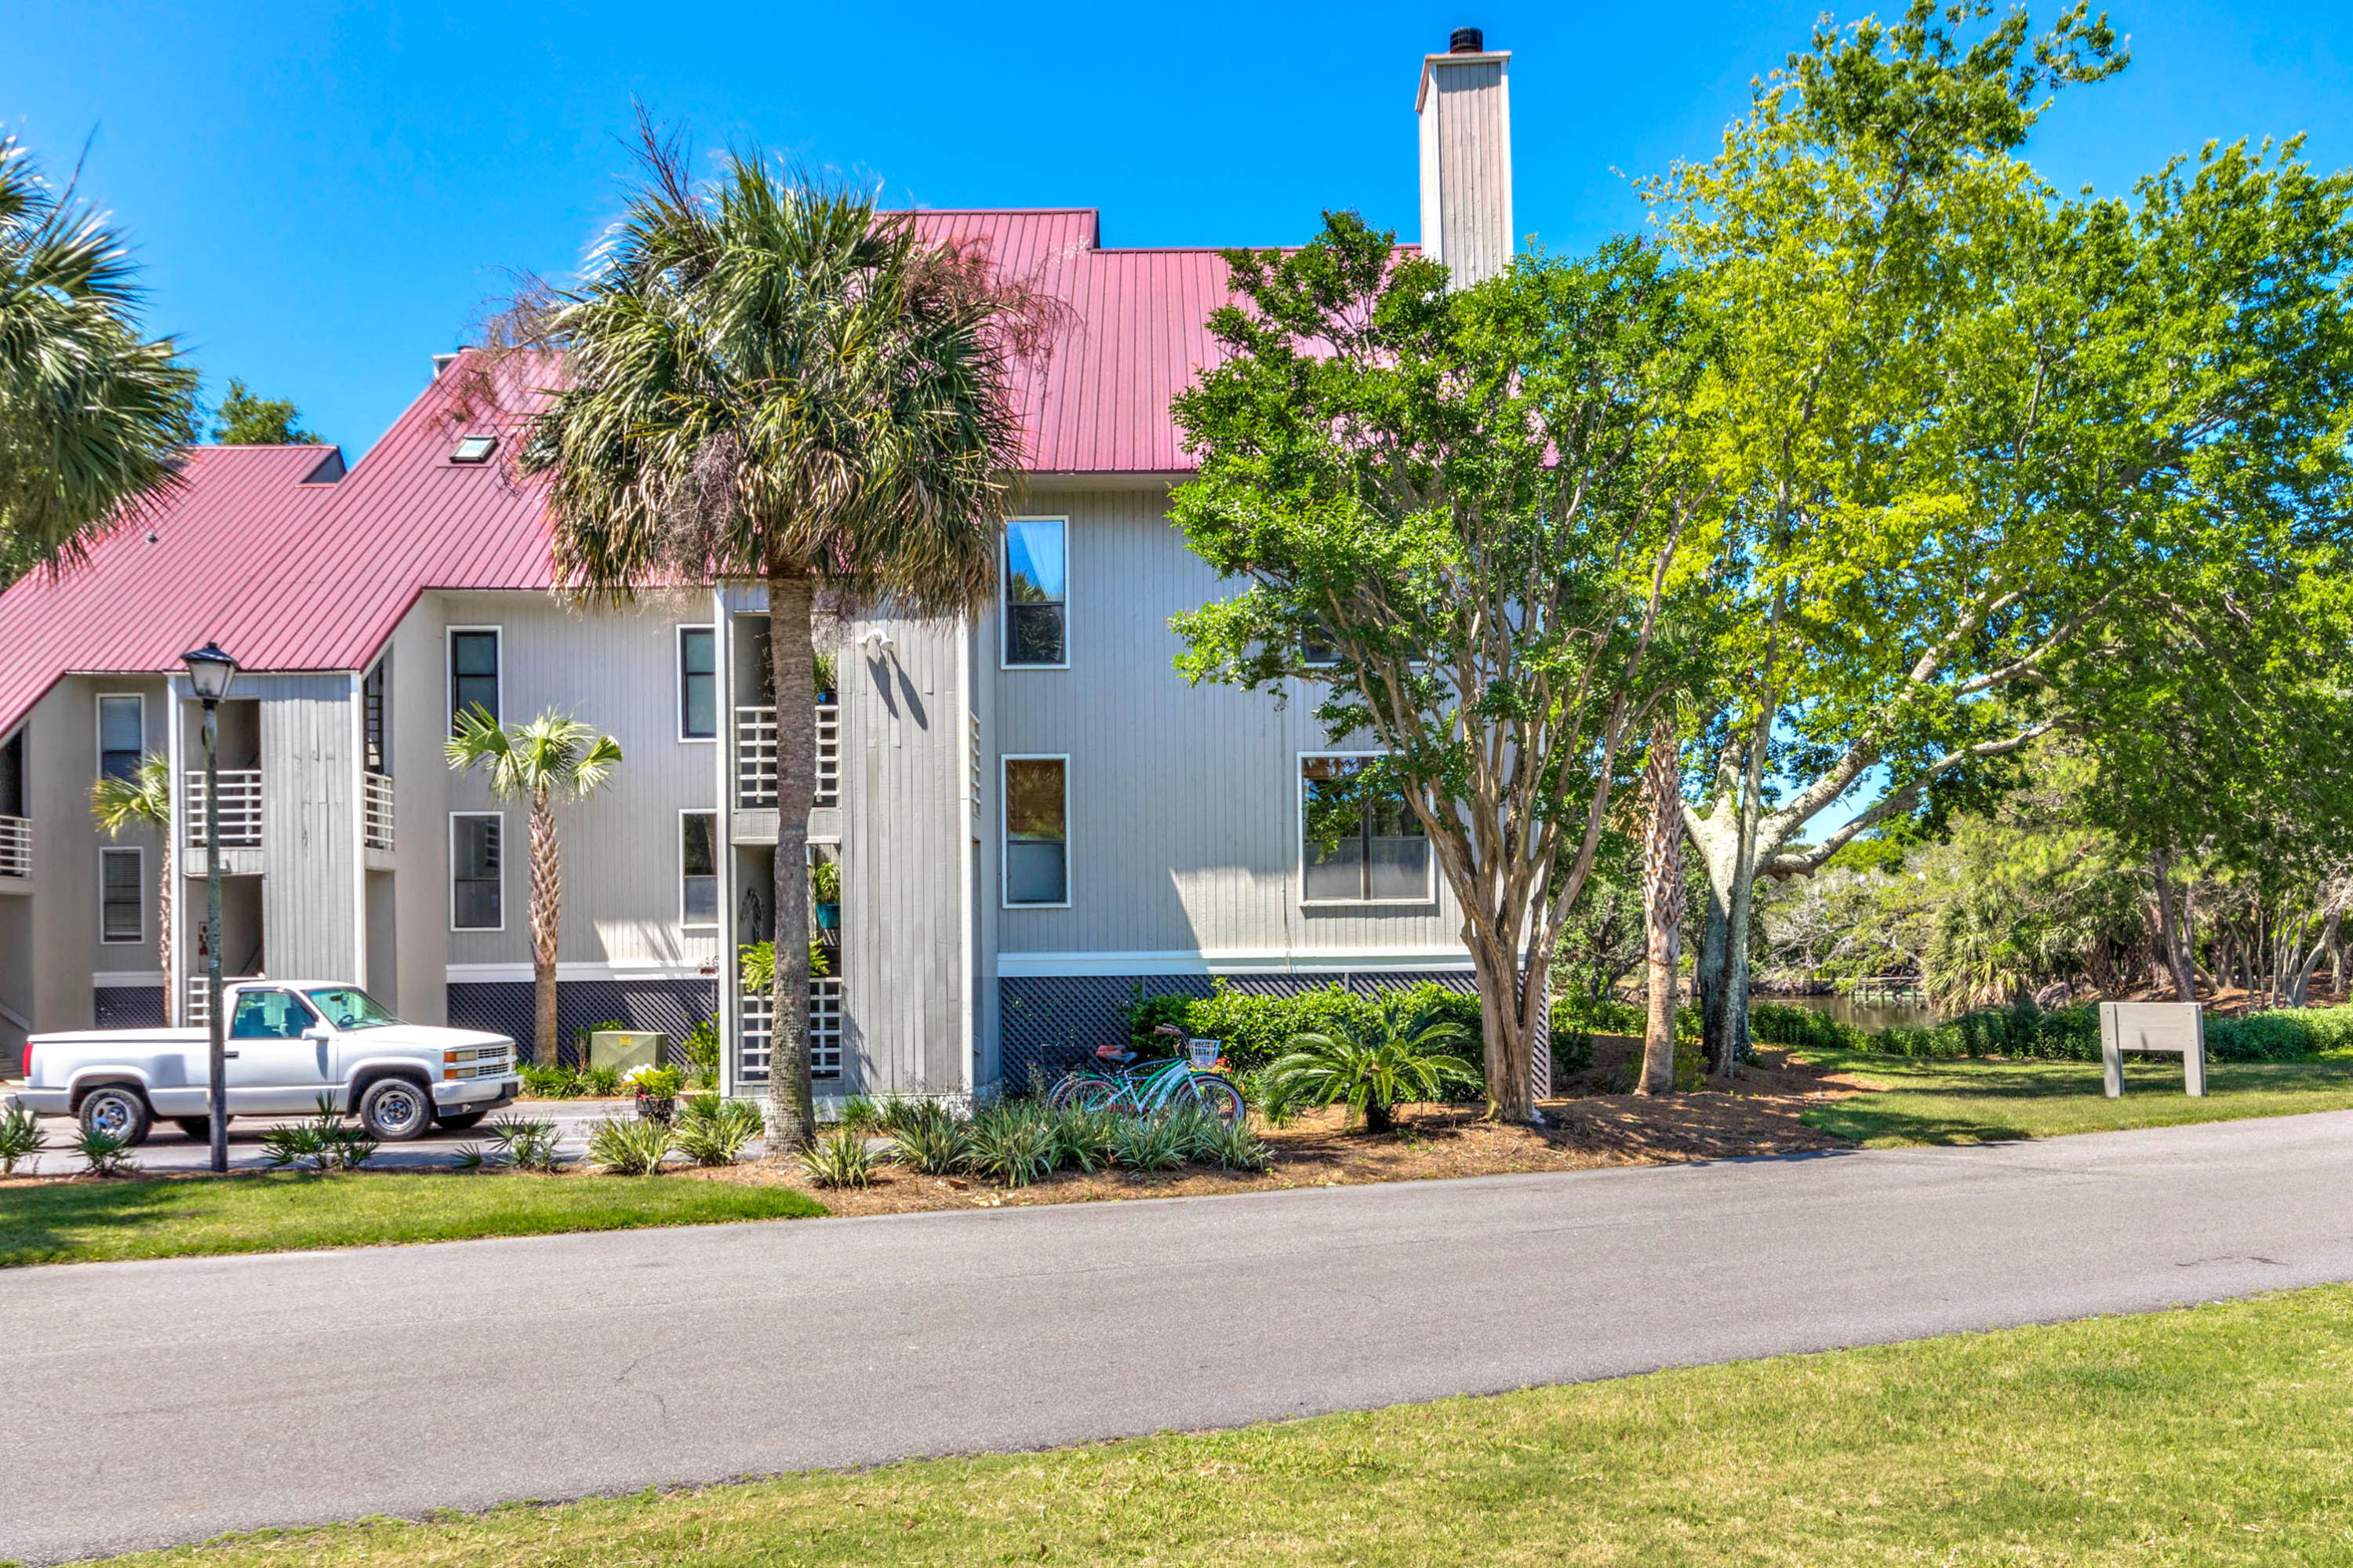 Mariners Cay Homes For Sale - 202 Mariners Cay, Folly Beach, SC - 30